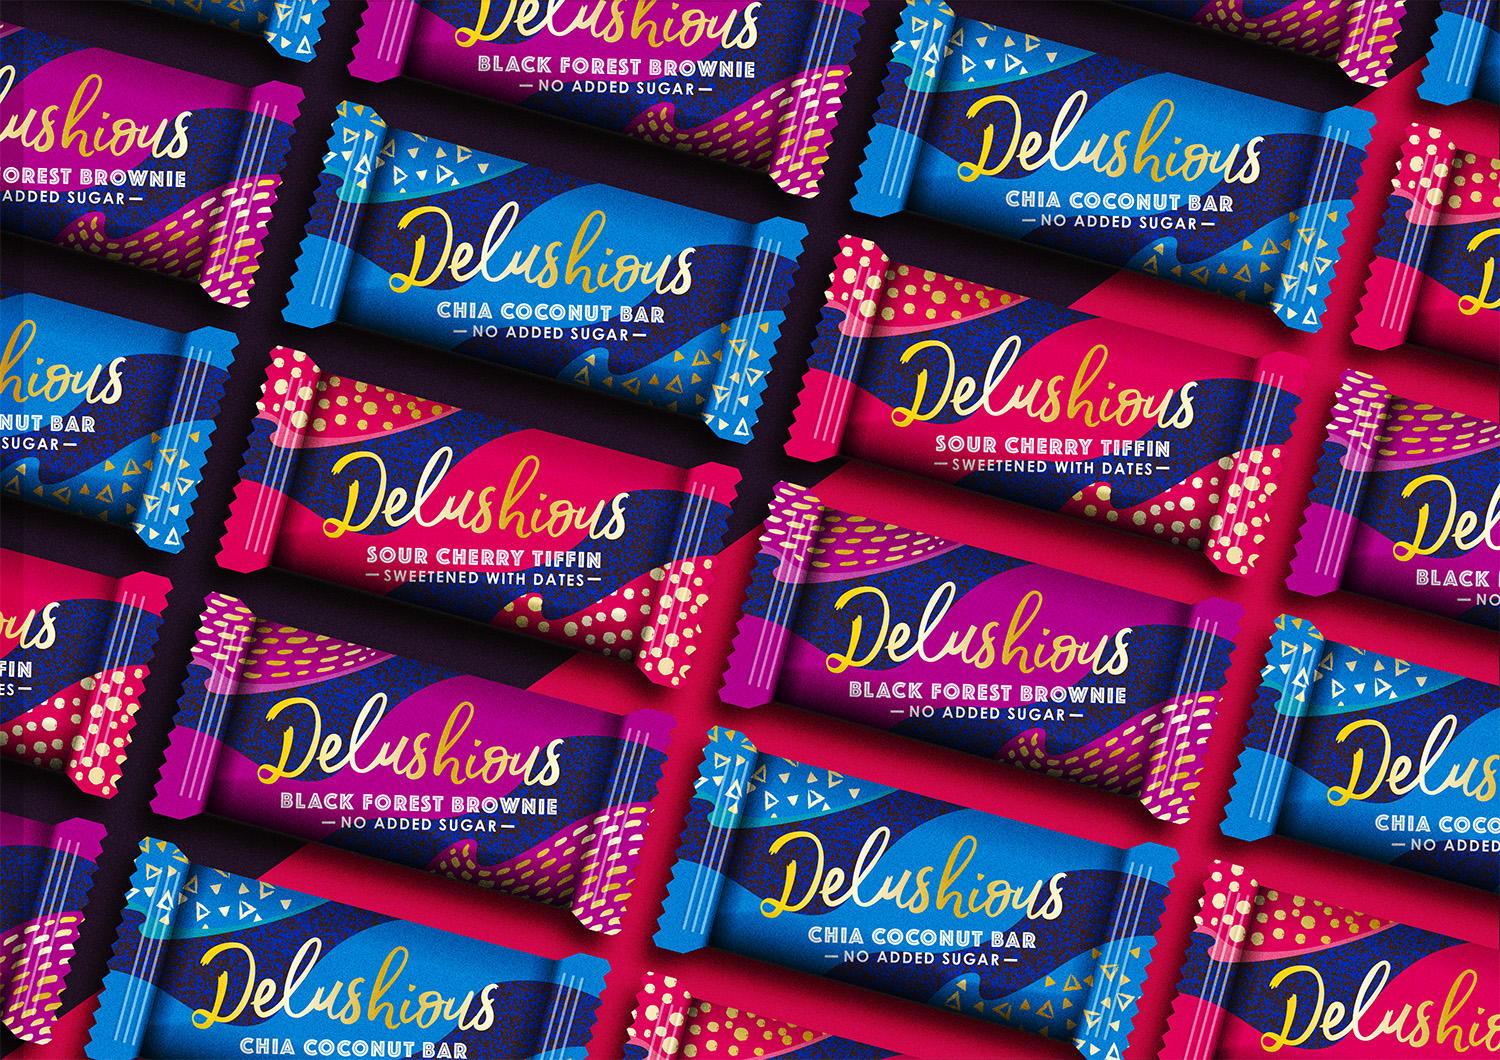 The Space Creative unveils design for new brand Delushious